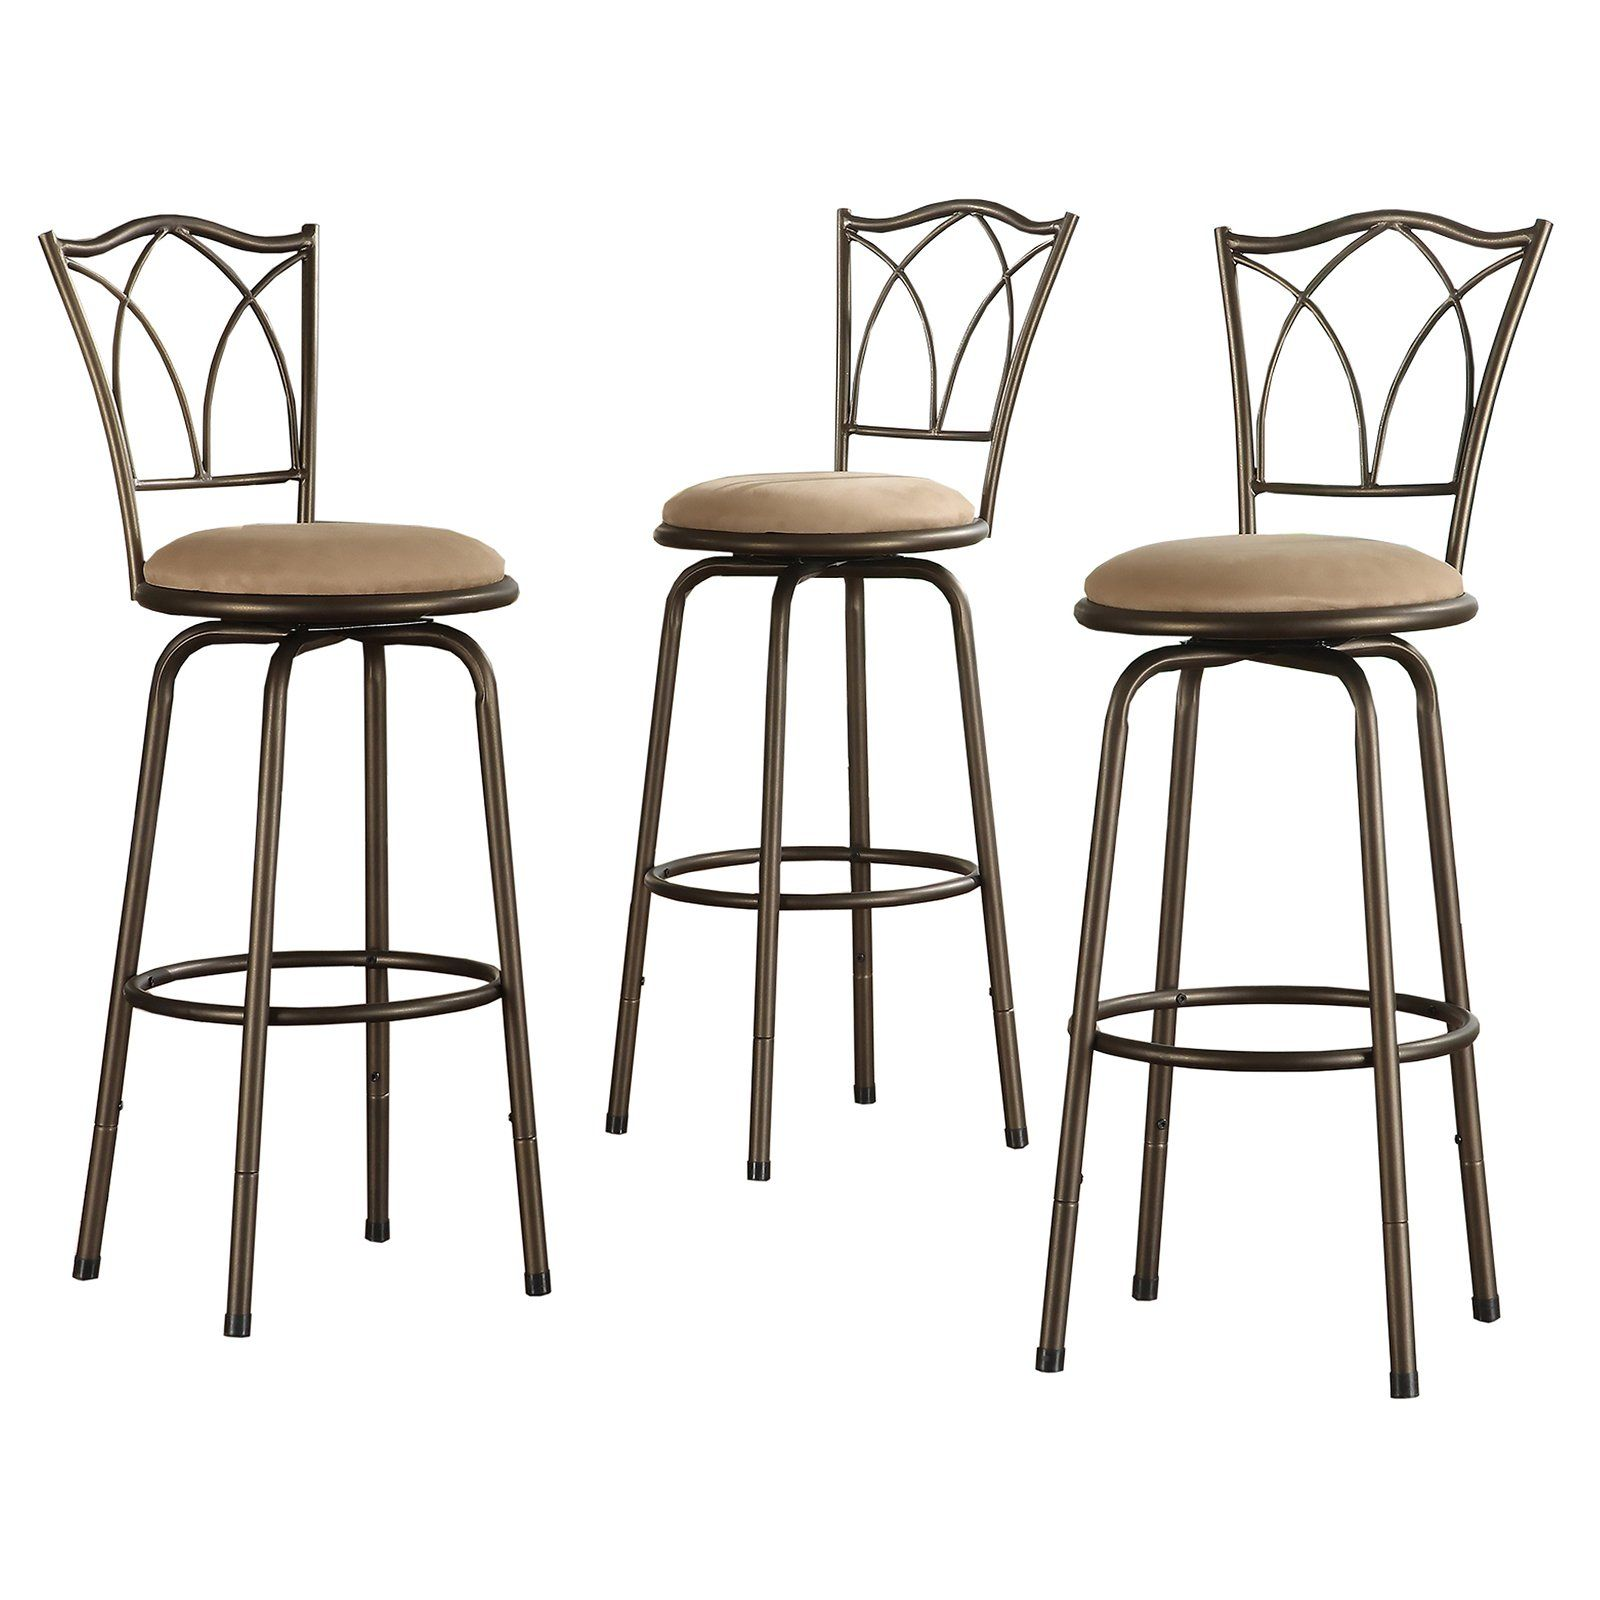 Home Bar Stools Adjustable Stool Adjustable Bar Stools